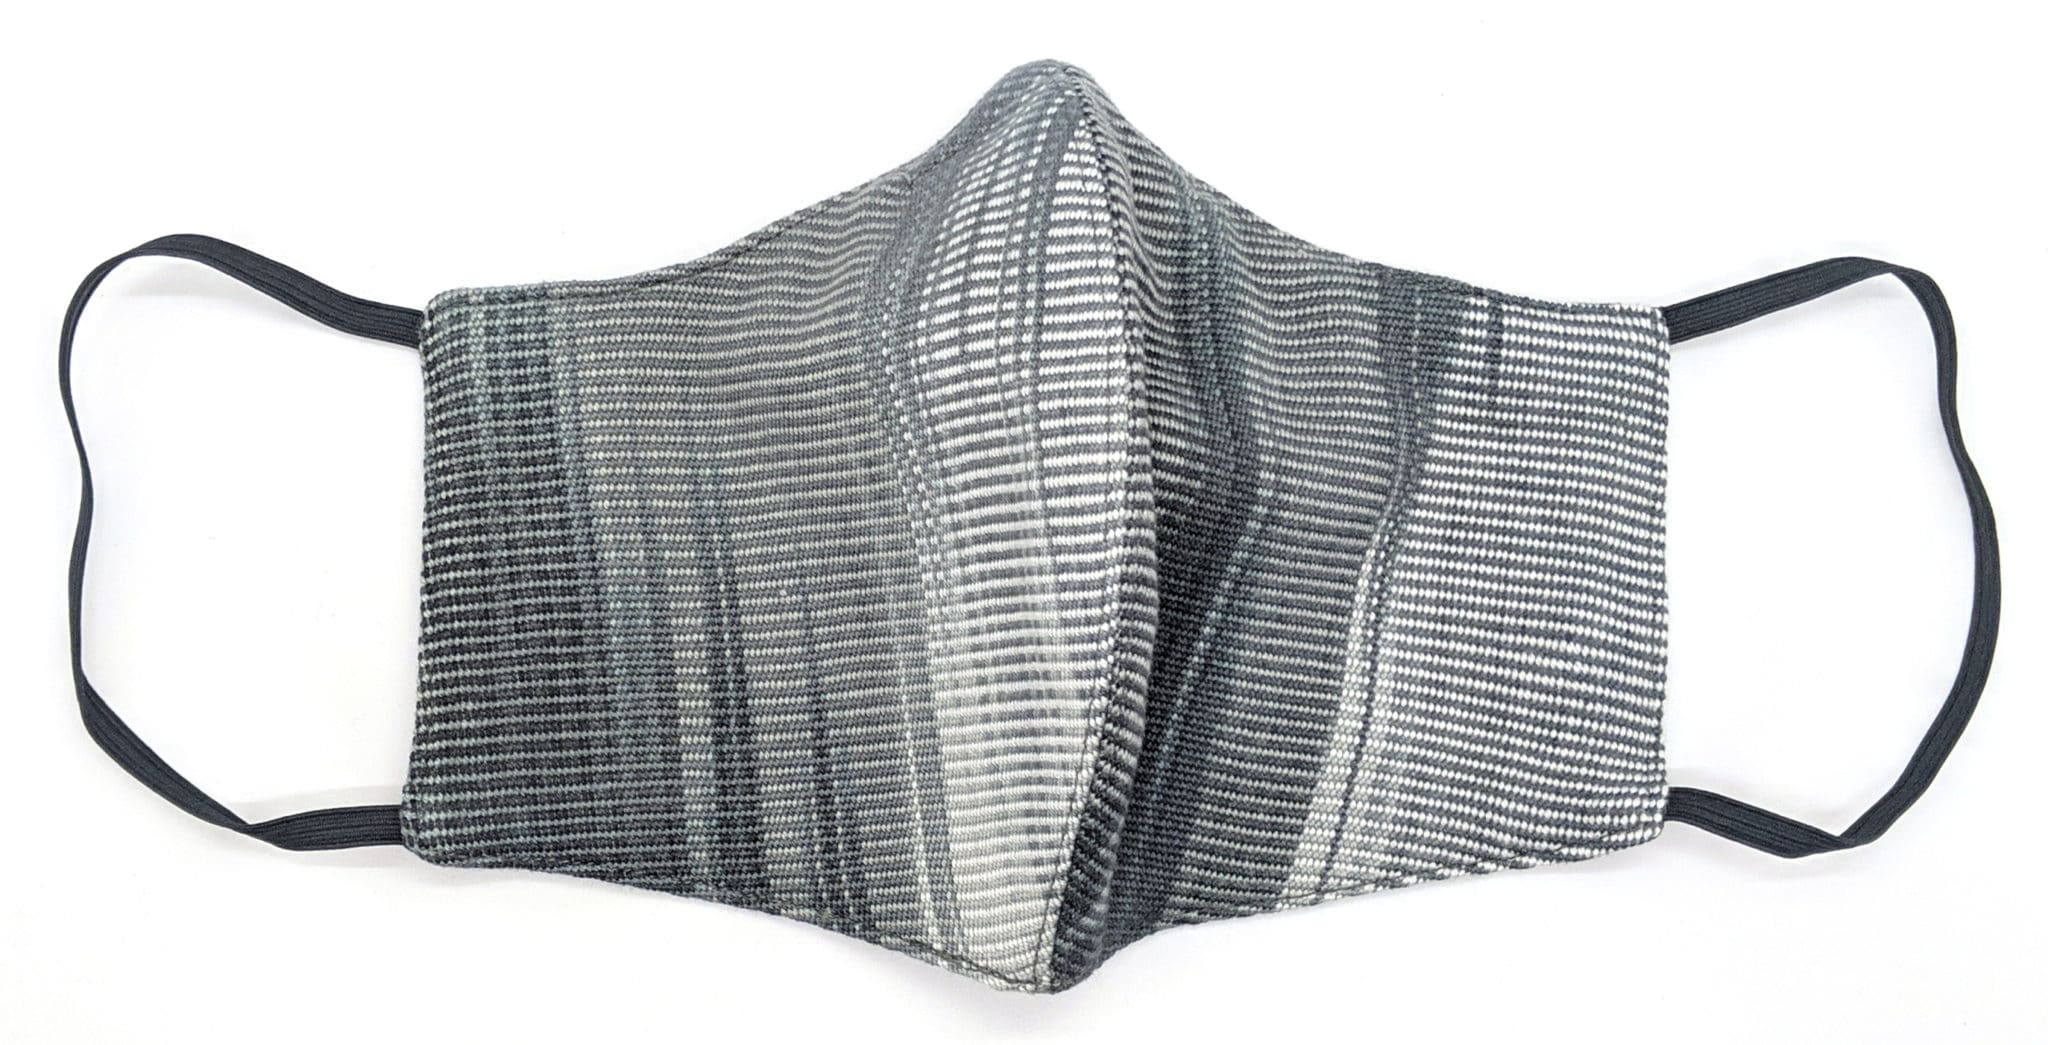 Handwoven Lightweight Bamboo Face Mask with Metal at Bridge of Nose - Black, White, Grays